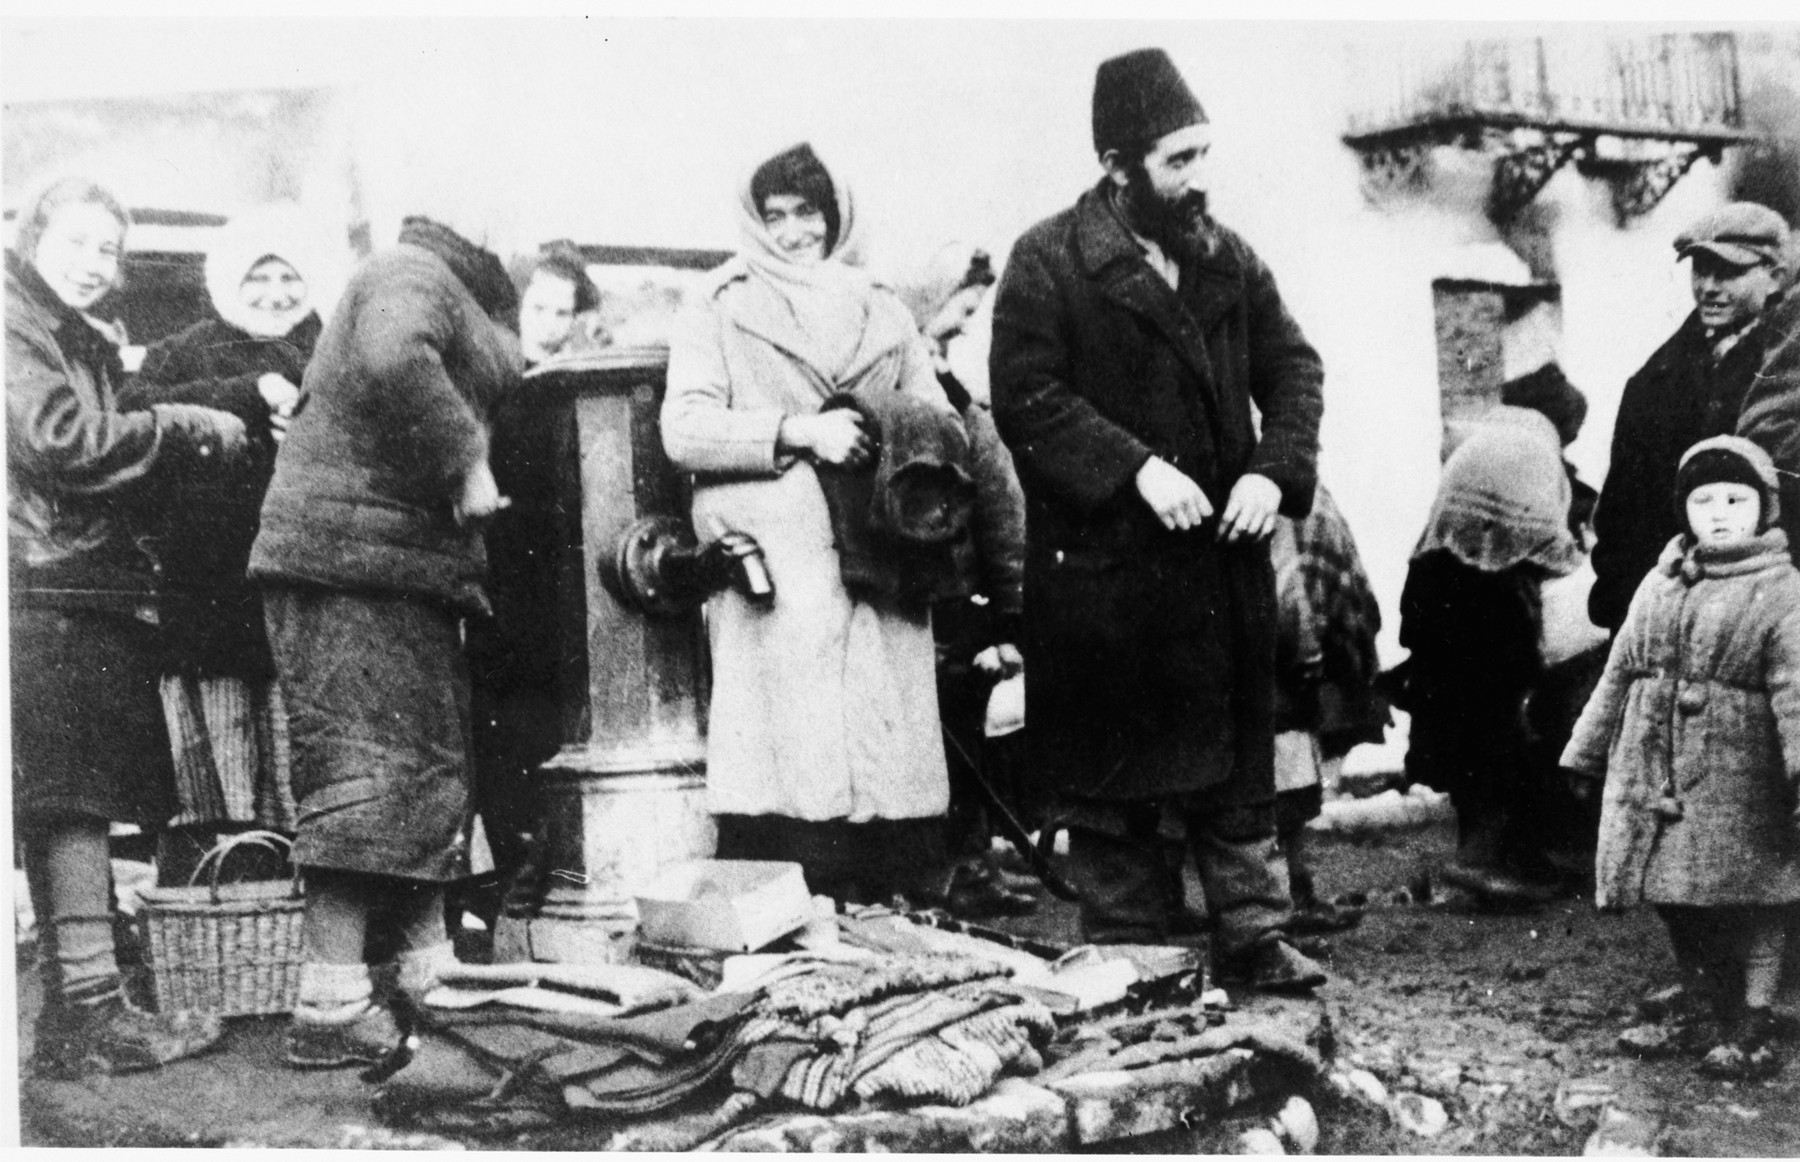 Jewish residents stand around a vendor's display of linen or clothing in the public square of an unidentified ghetto.